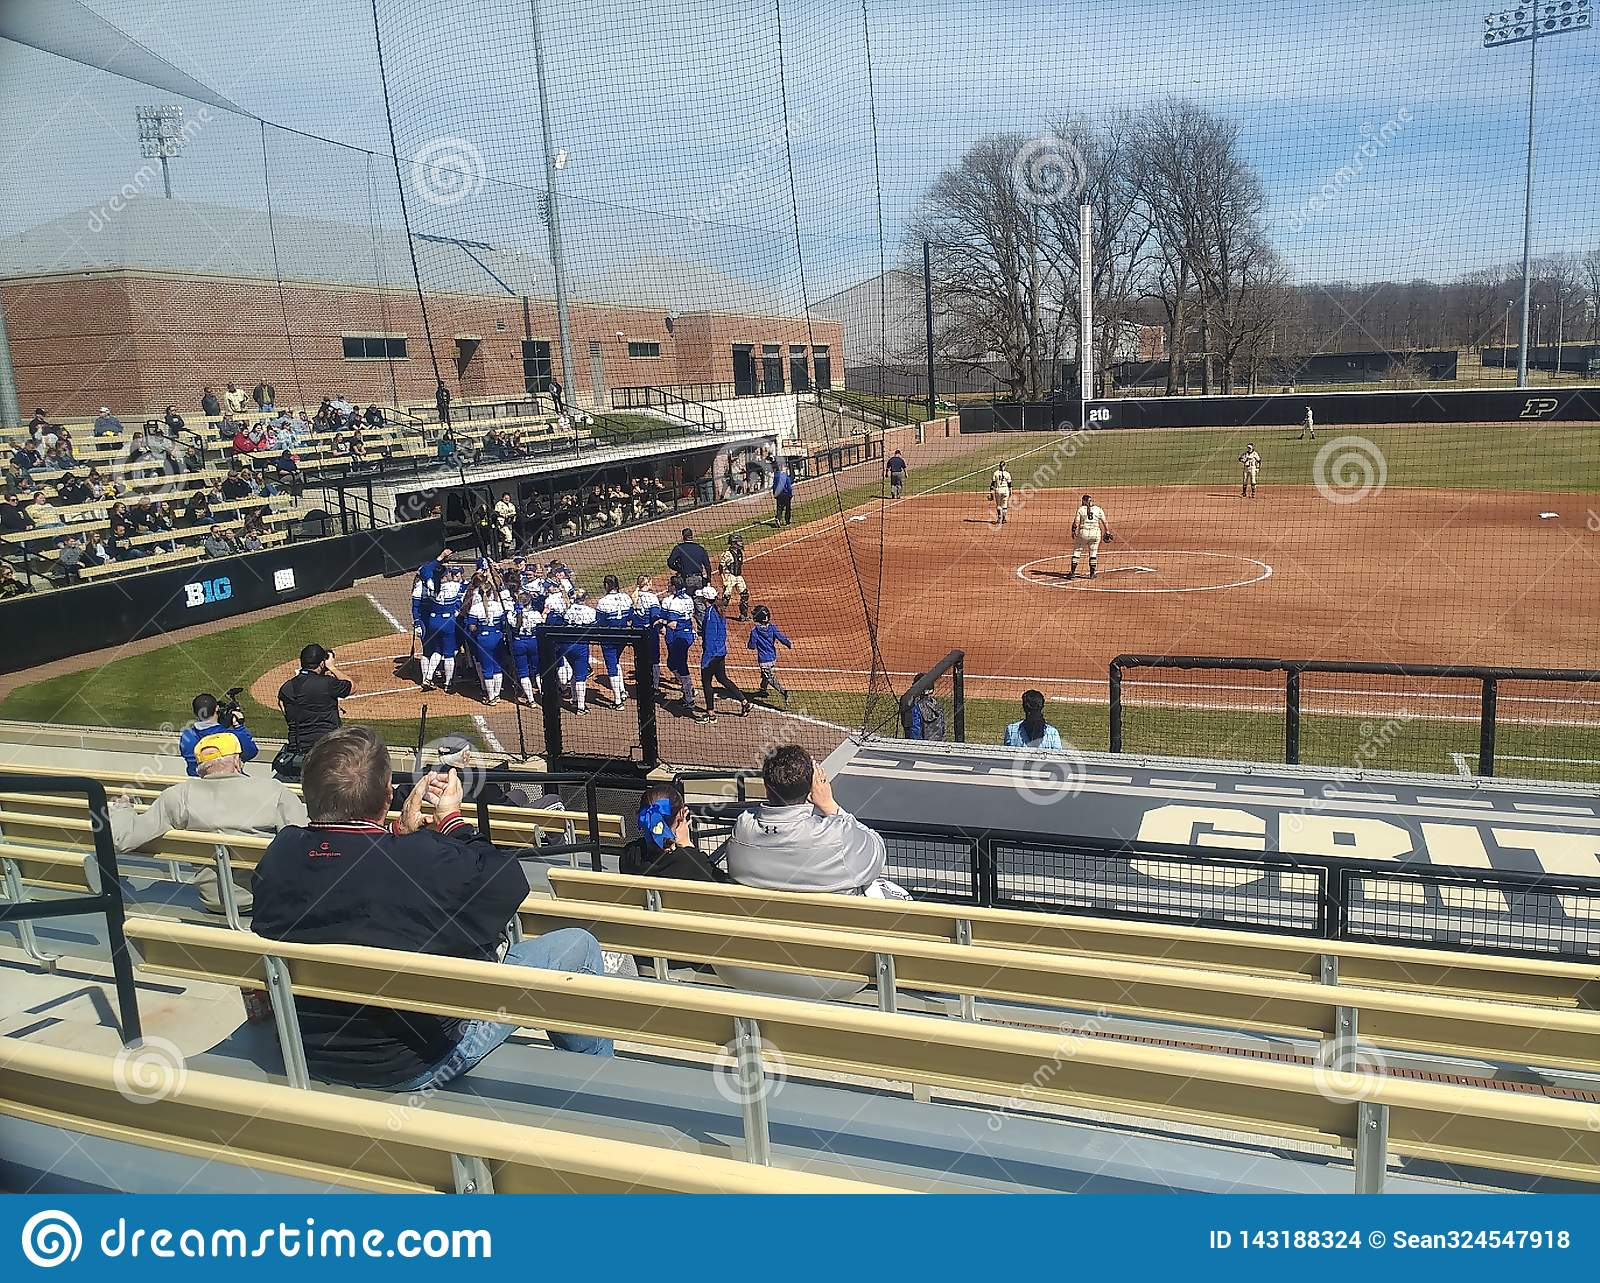 Indiana state players greet teammate at home plate